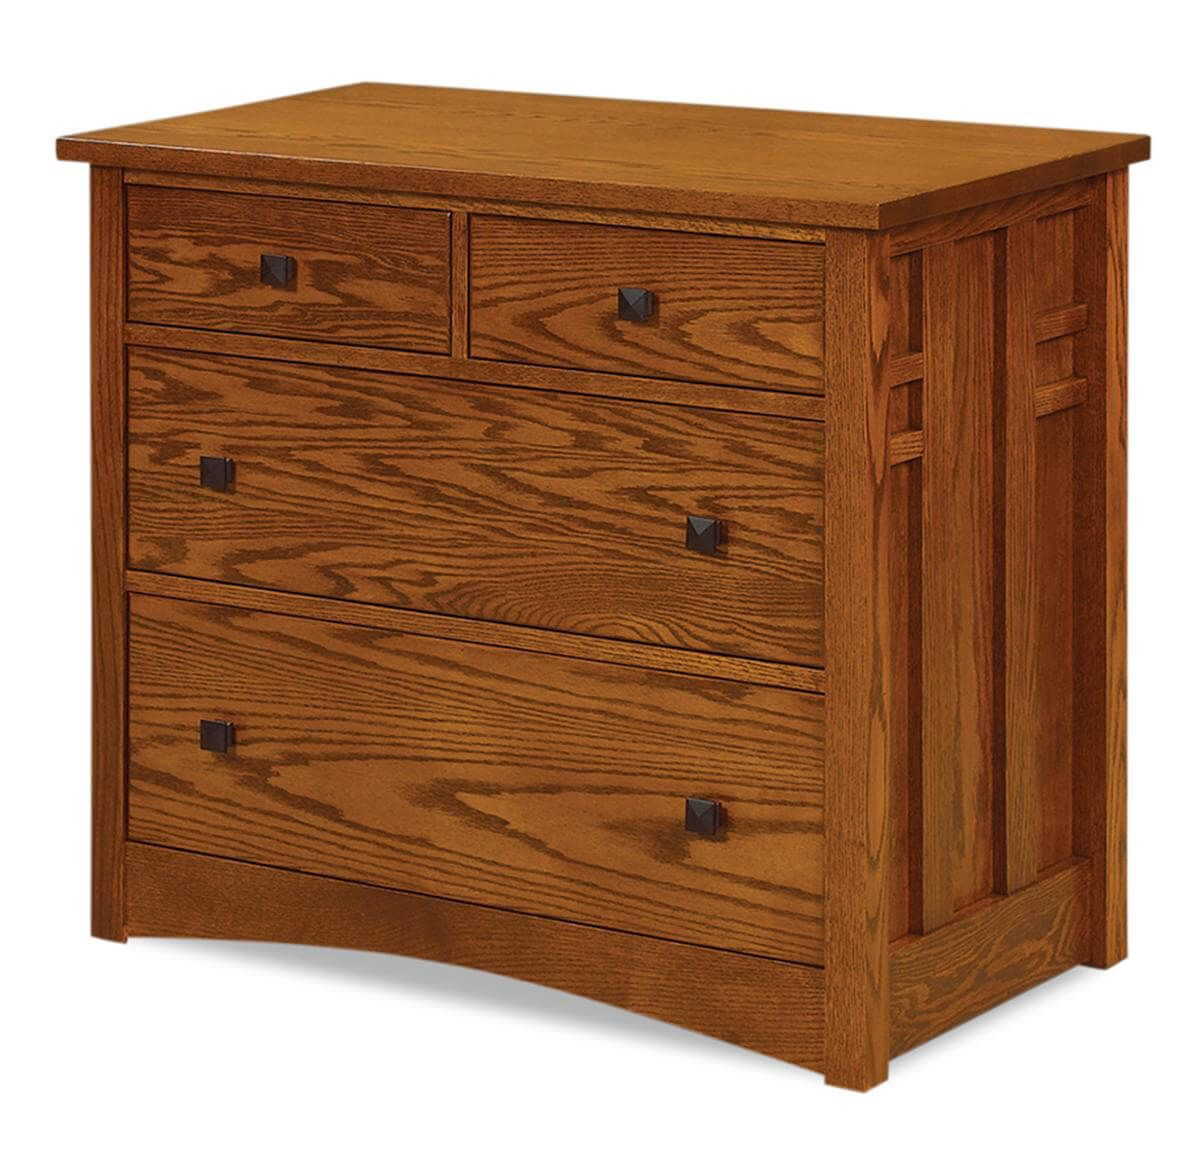 Alpine Kid's Chest of Drawers